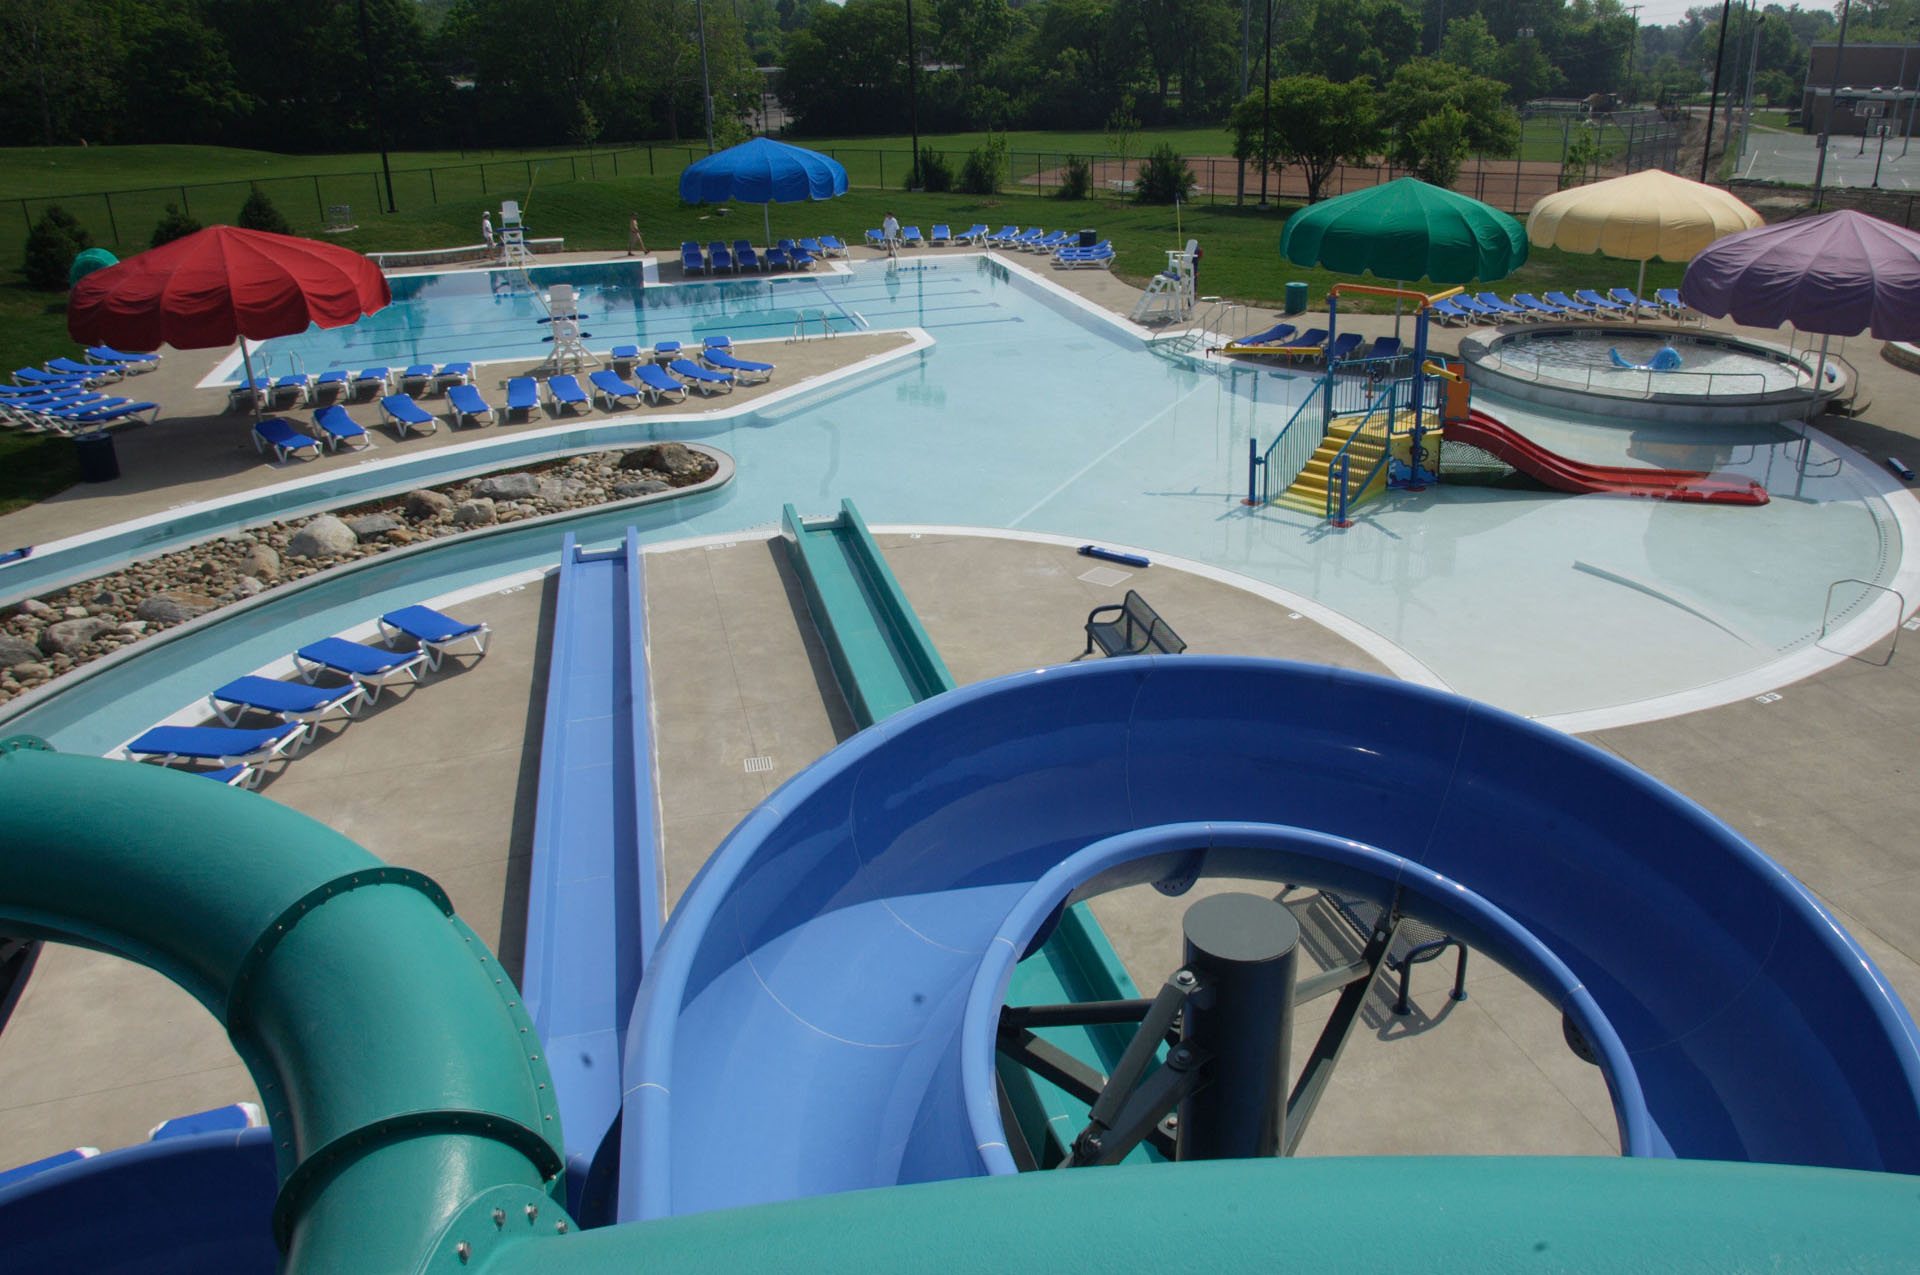 Reed Road Water Park From Top Of Slide